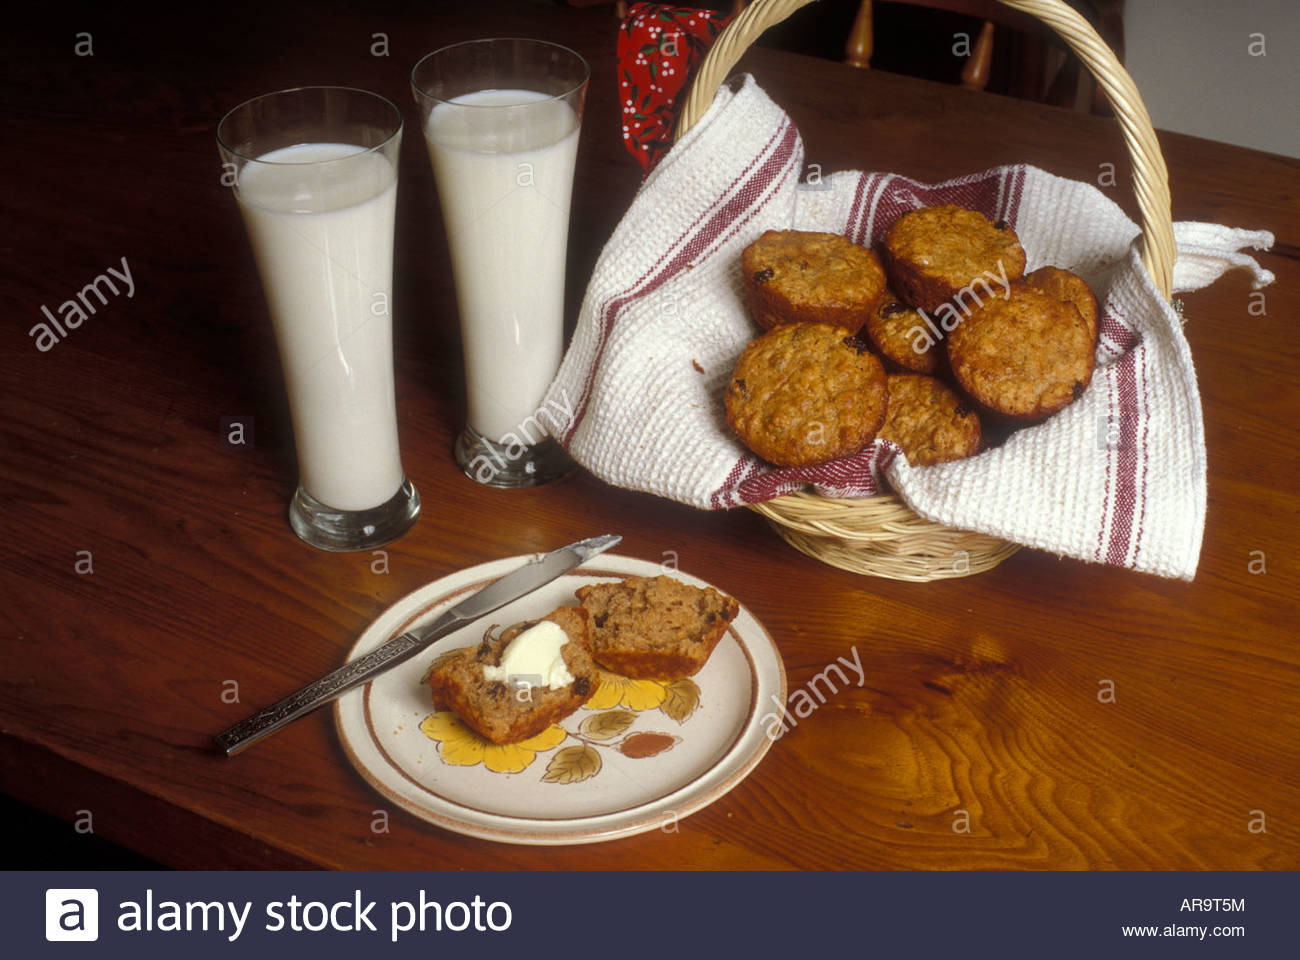 Raisin bran muffins home cooking - Stock Image